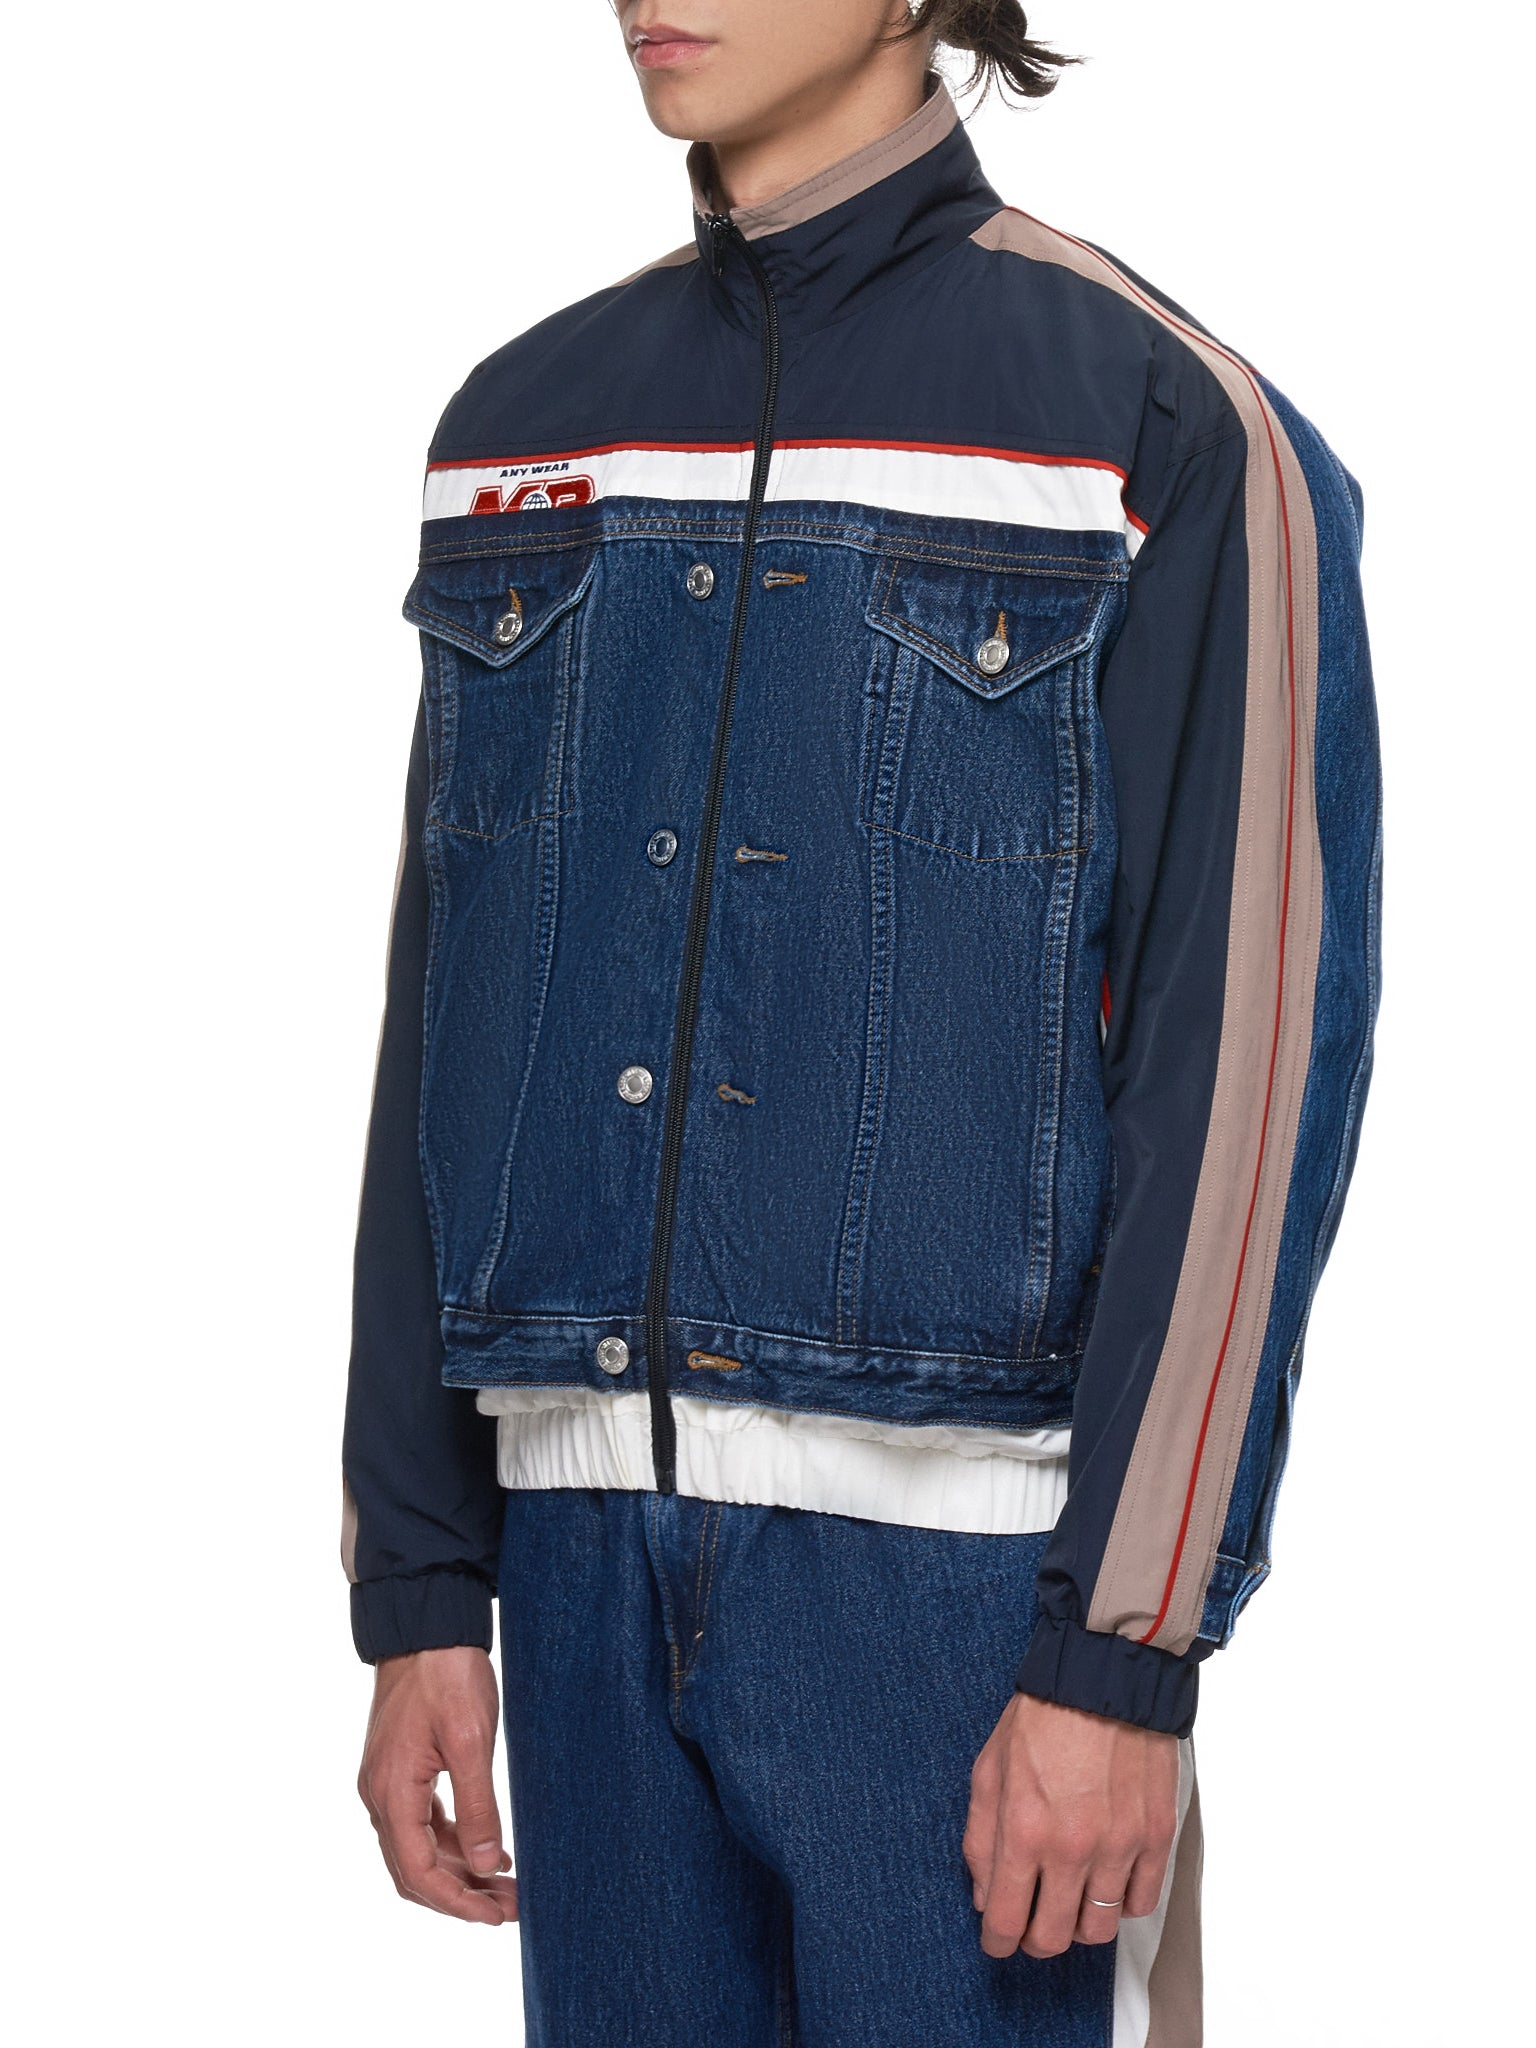 Martine Rose Denim Jacket - Hlorenzo Side